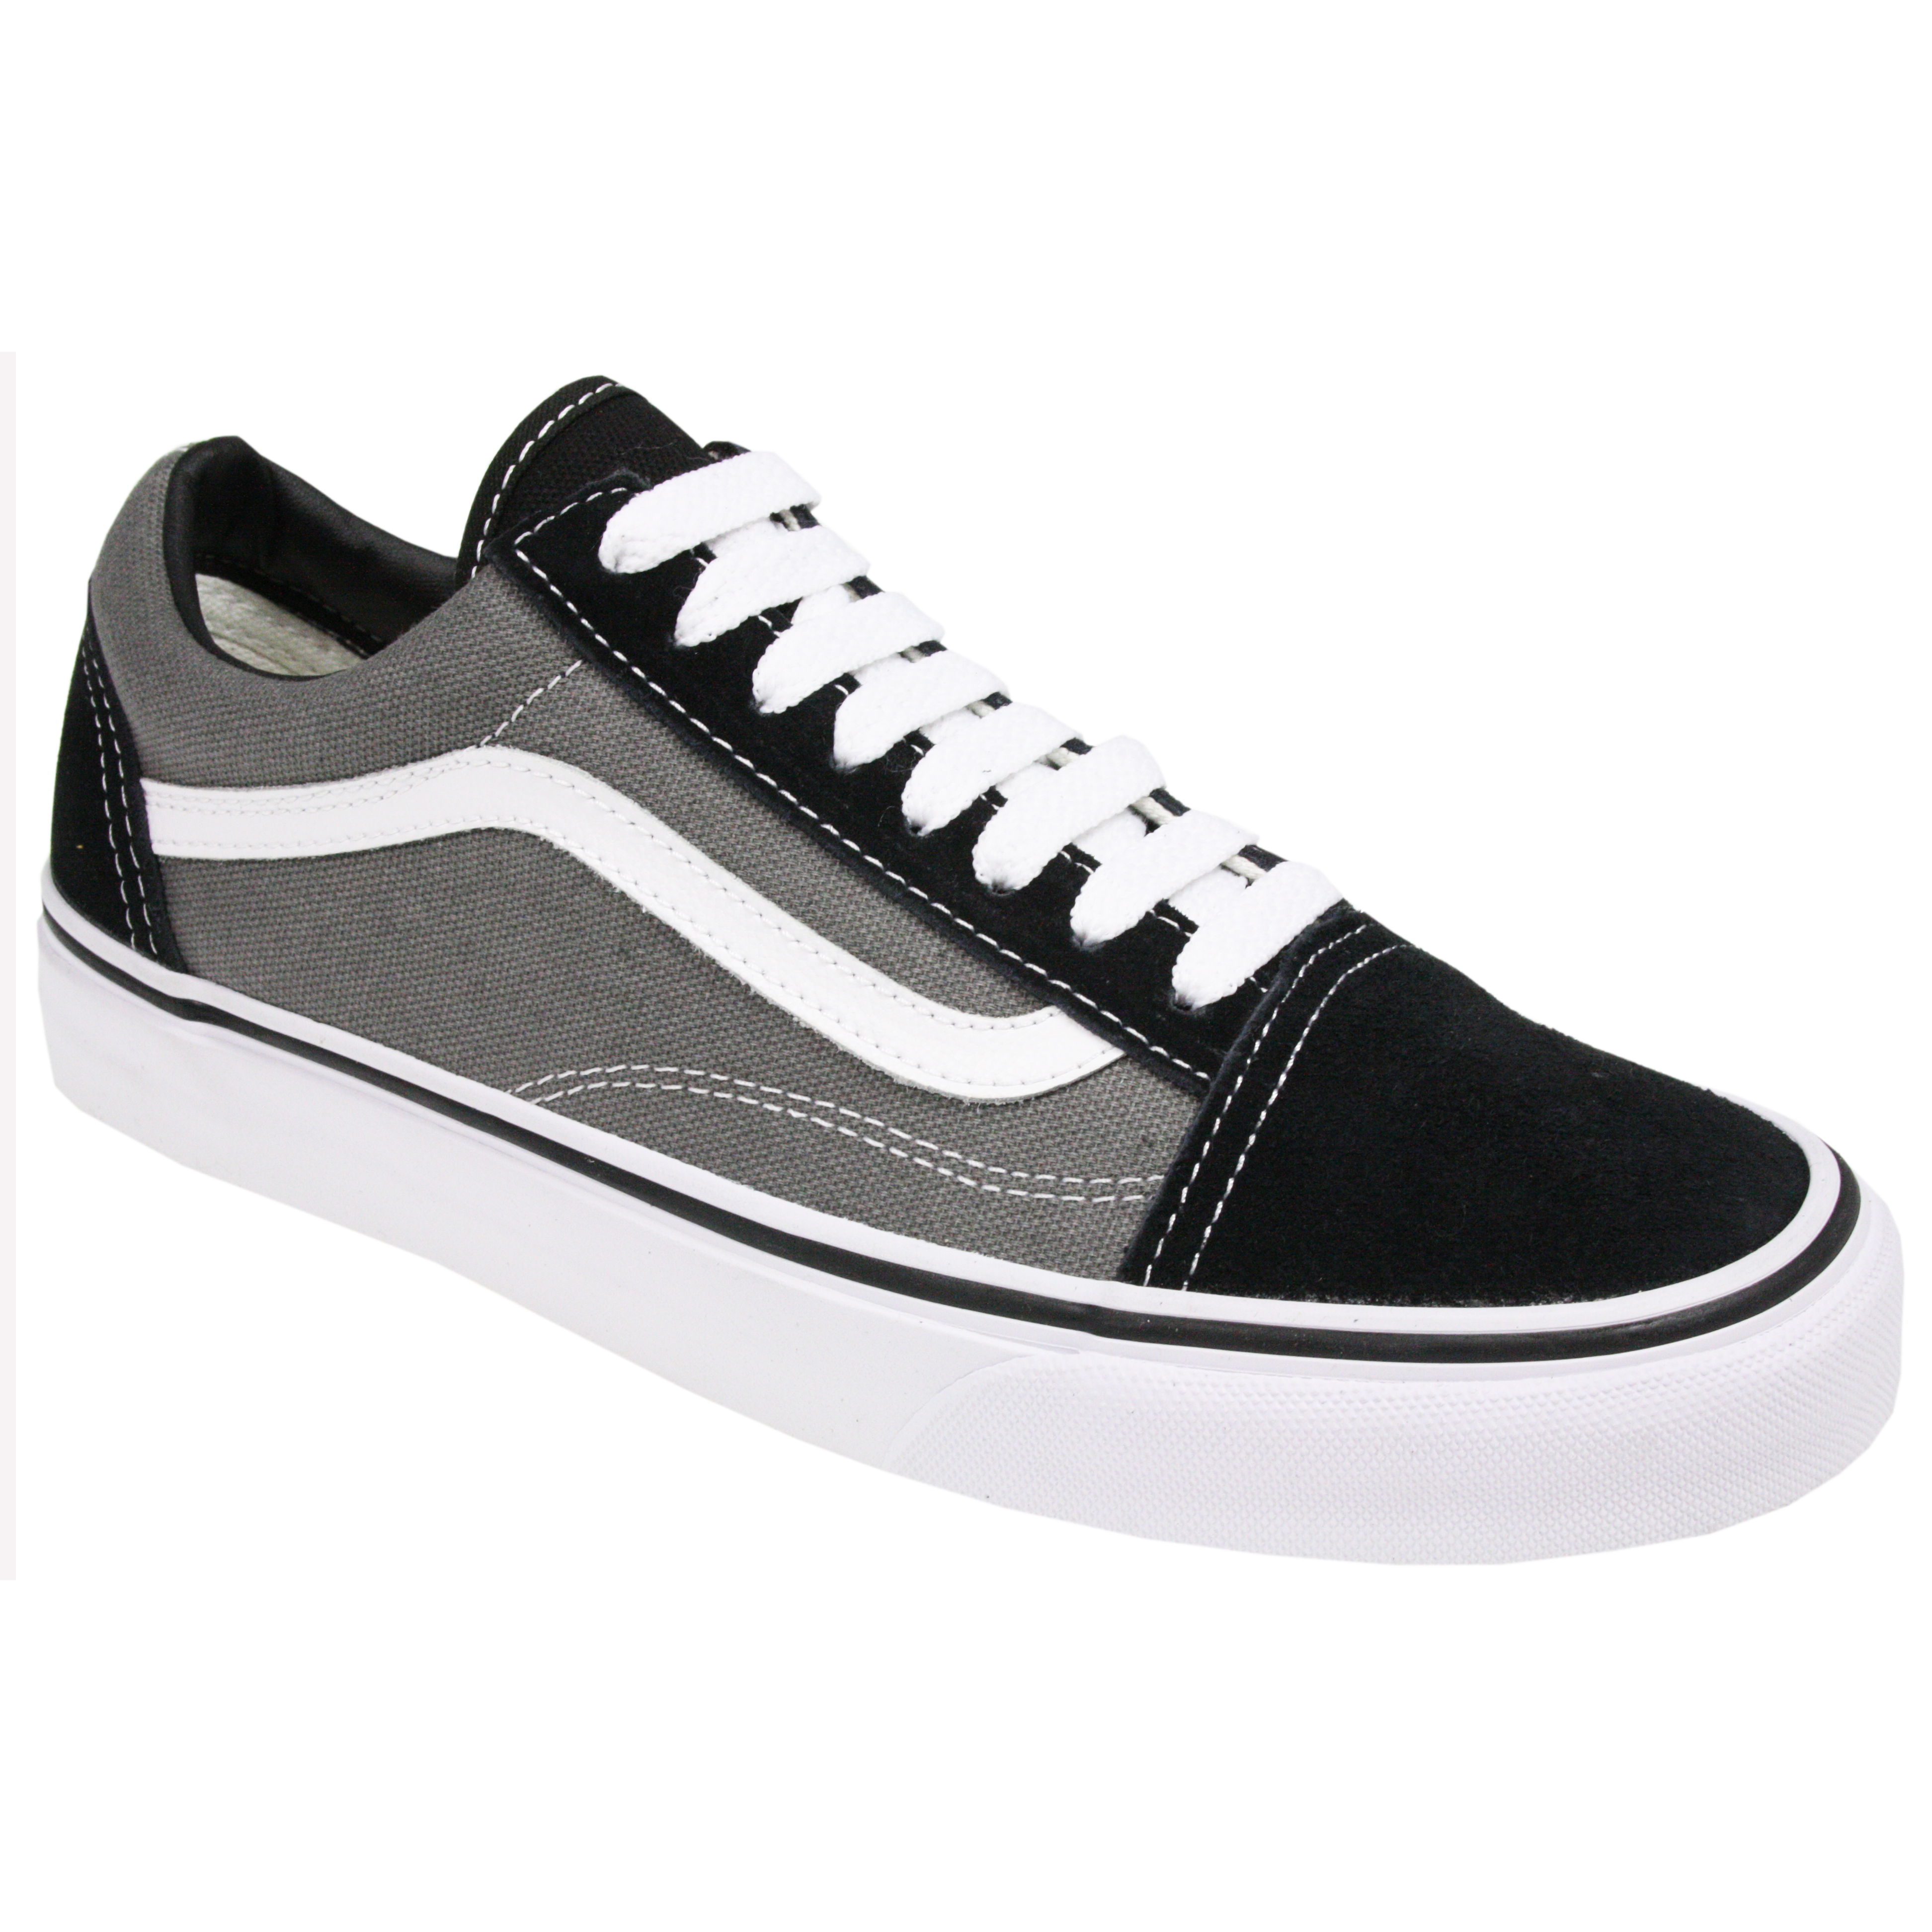 Vans-Old-Skool-Canvas-Unisex-Skate-Sneakers-Trainers-Shoes-Size